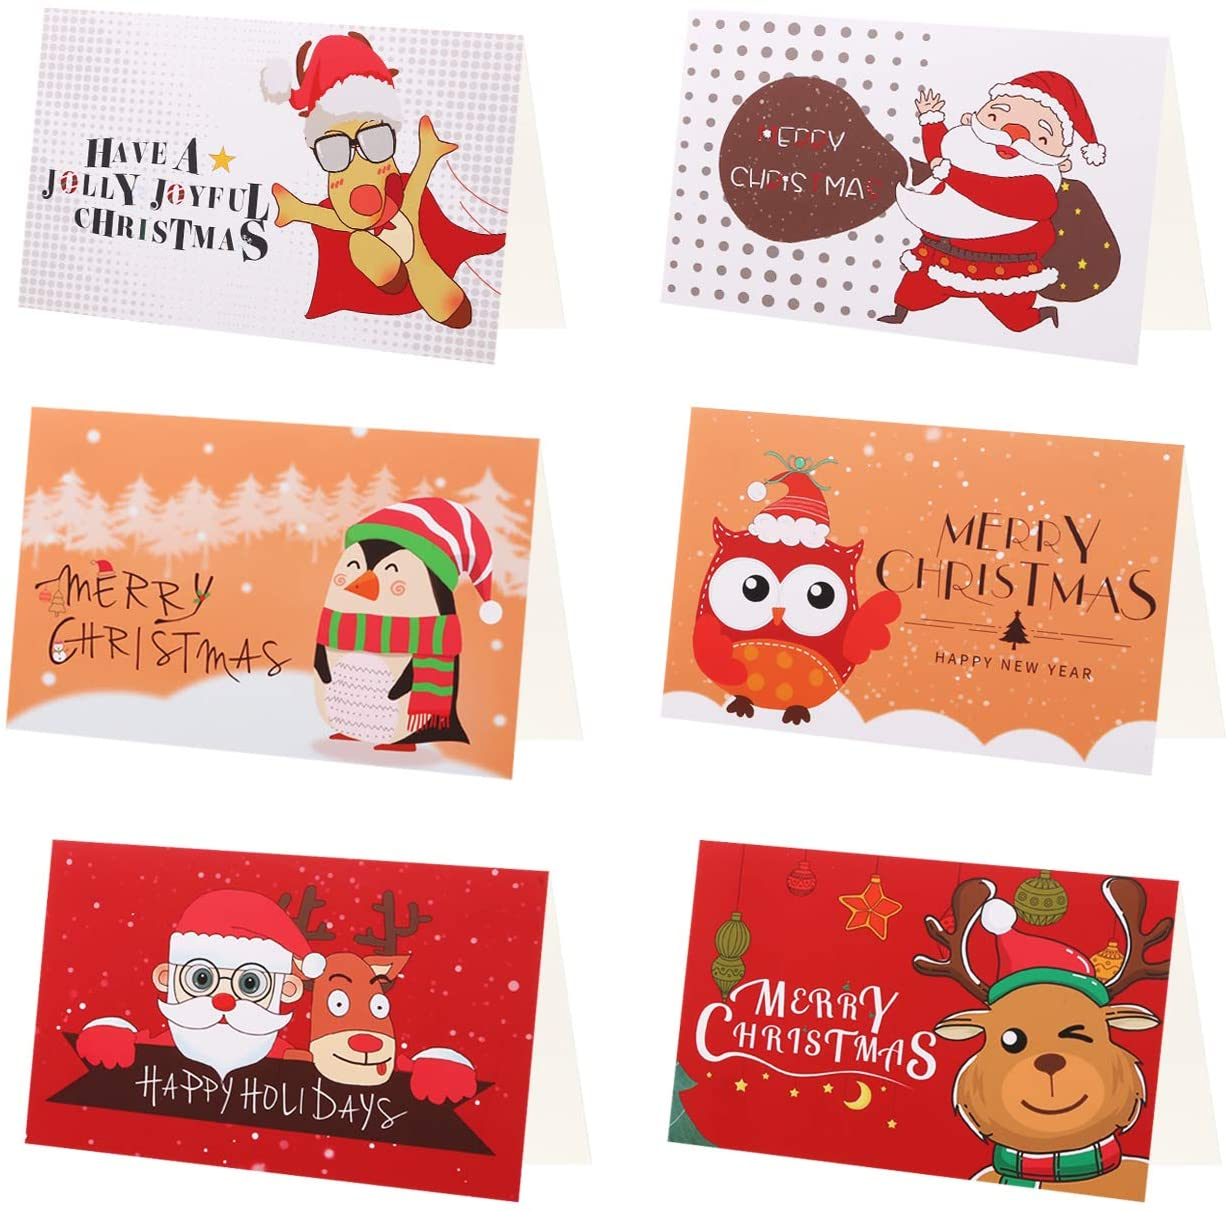 KESOTE 24 Pack Merry Christmas Cards with Envelopes and Sealing Stickers - 6 Assorted Cute Design Holiday Cards, Blank Xmas New Year Greeting Cards Bulk